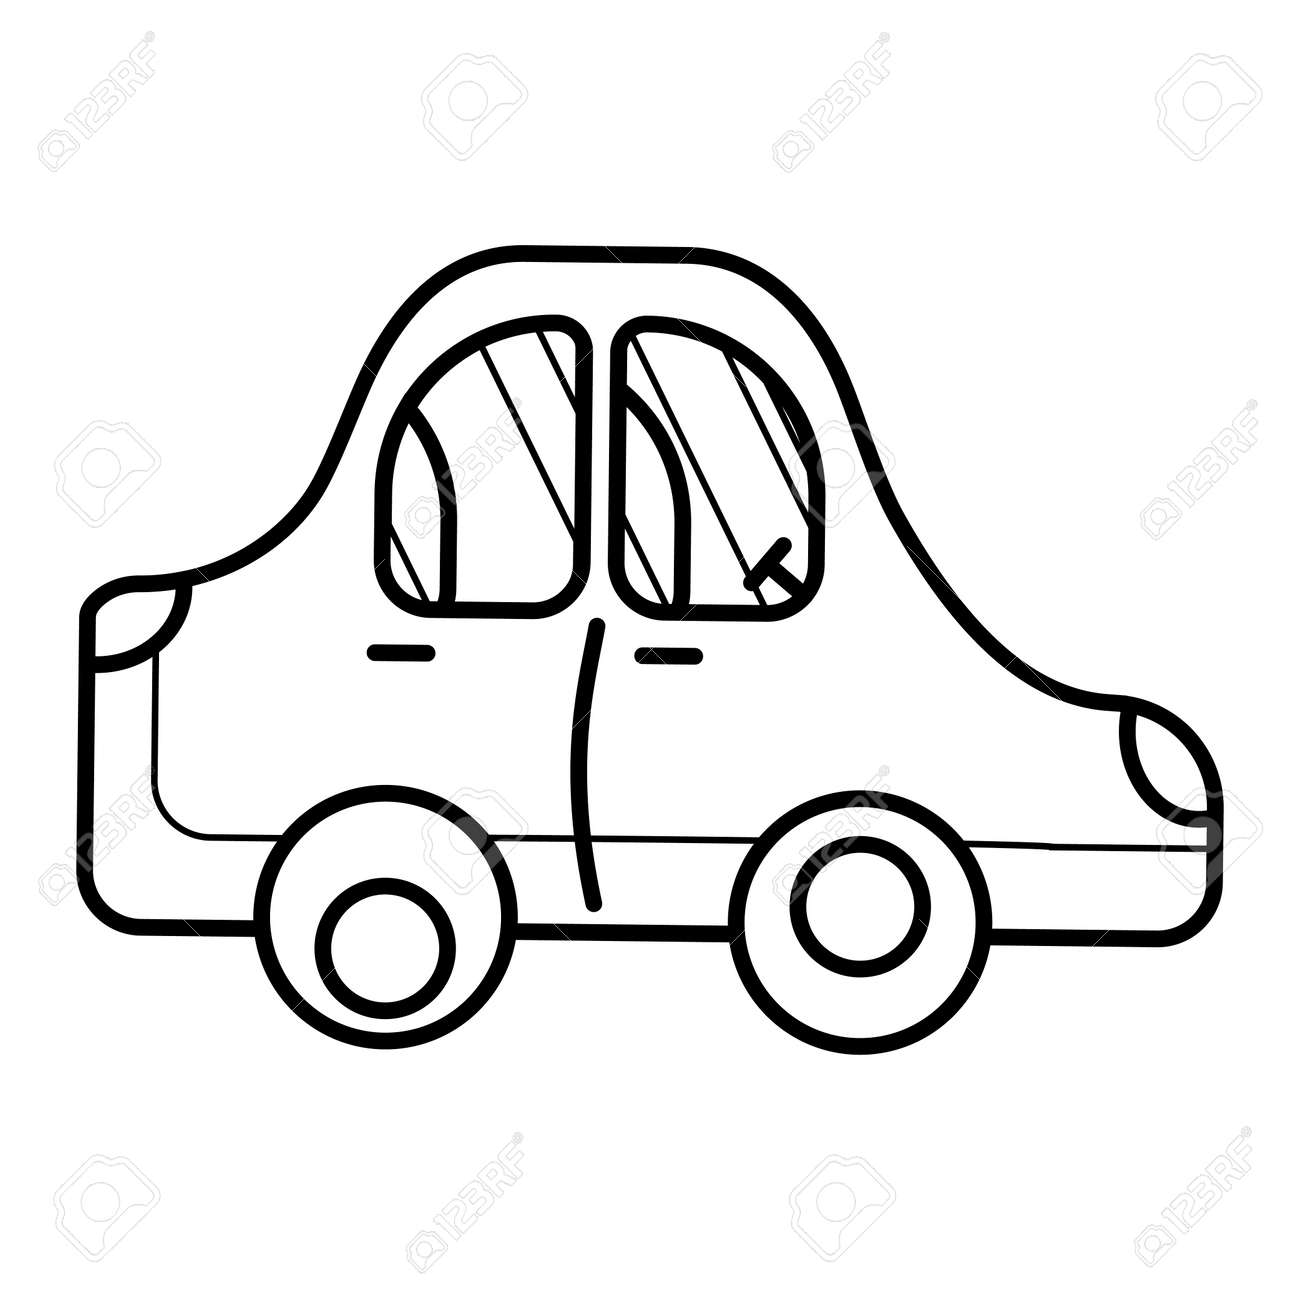 Template For Baby Coloring Illustration With A Toy Cartoon Car Royalty Free Cliparts Vectors And Stock Illustration Image 146183482